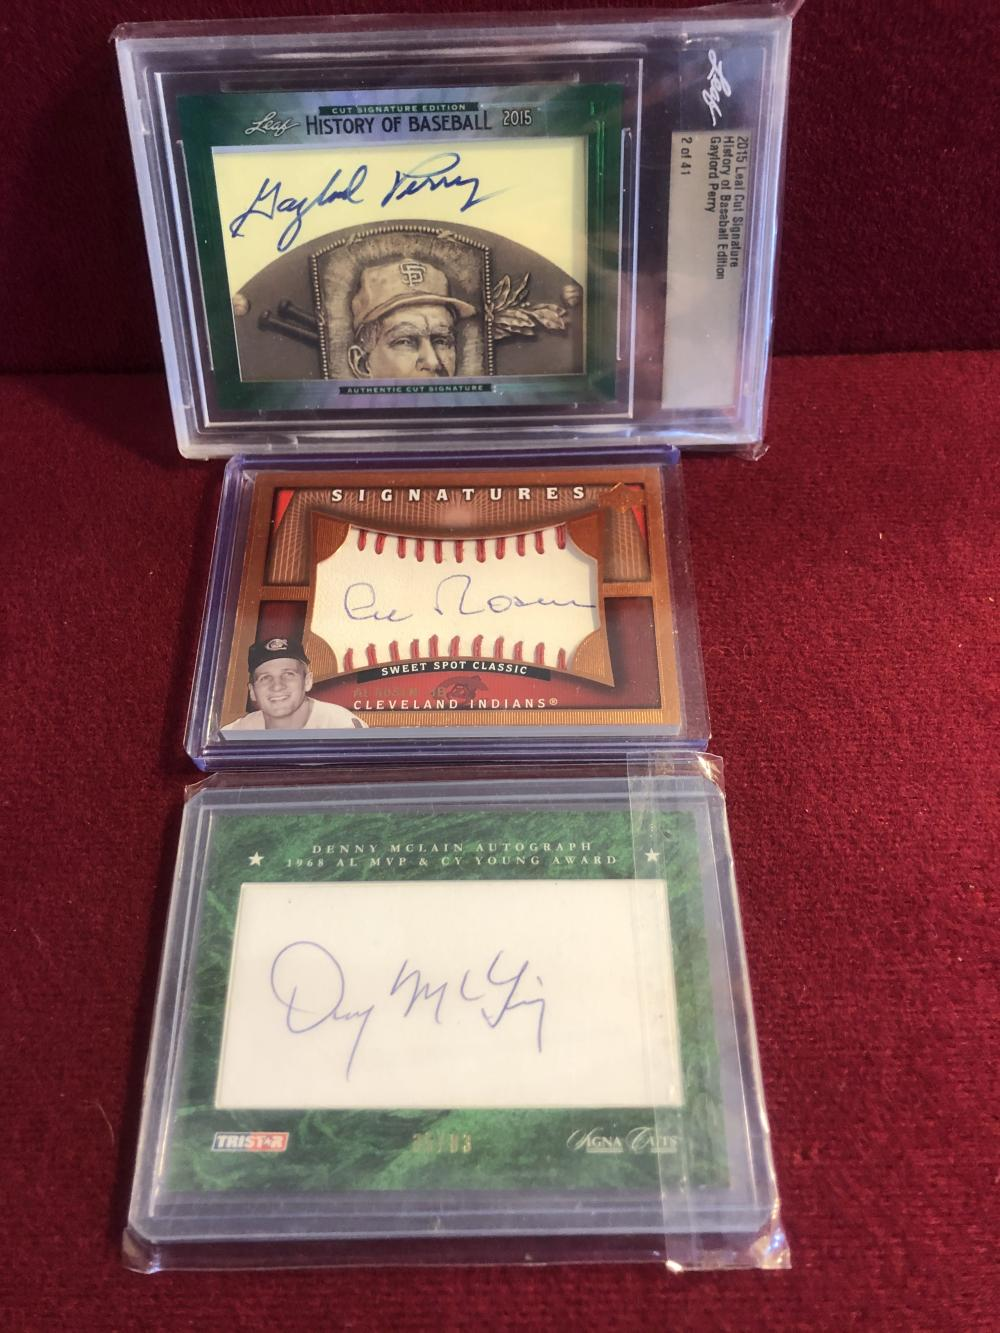 Autographed baseball cards - Rosen, Perry, McLain